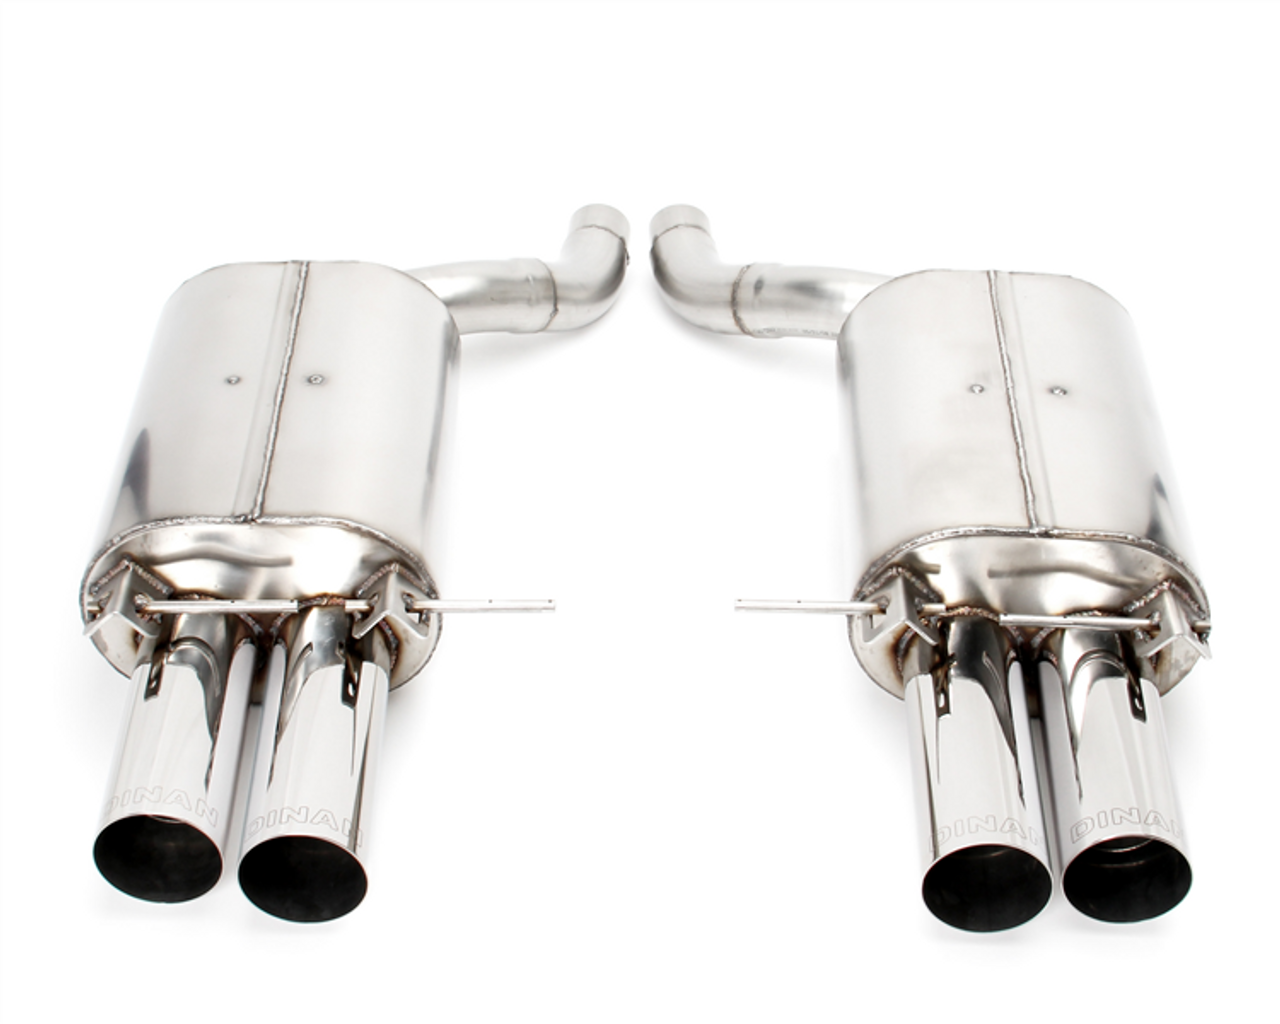 Dinan Free Flow Exhaust For Bmw M5 E60 2006 2010 Ecotune Performance Without Compromise